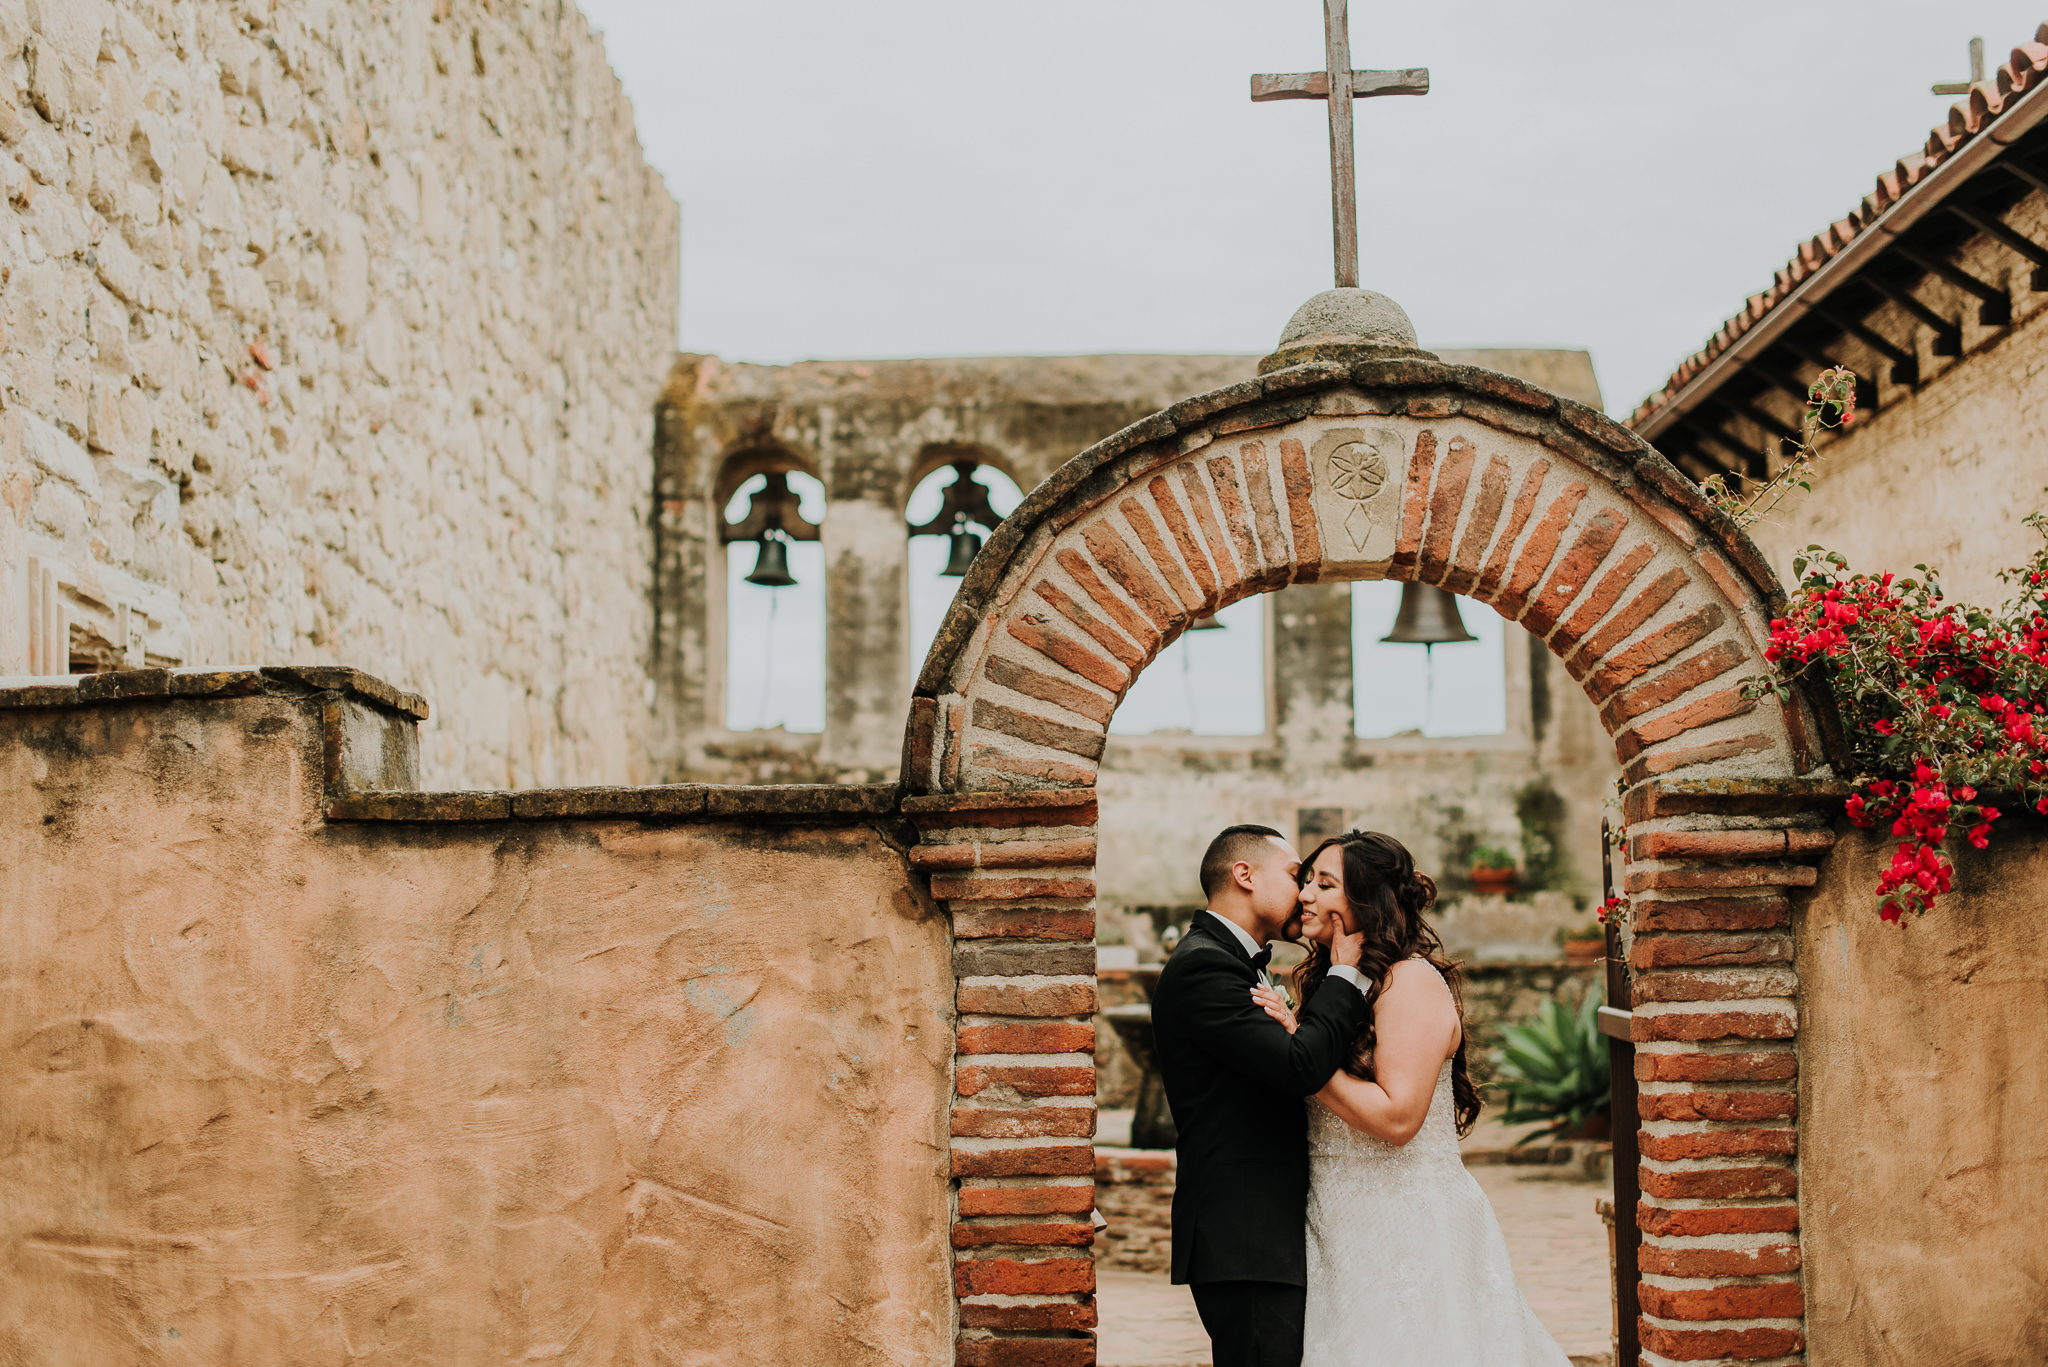 2019-04-05_Brittany_and_Nick_-_Married_-_San_Juan_Capistrano-116.jpg